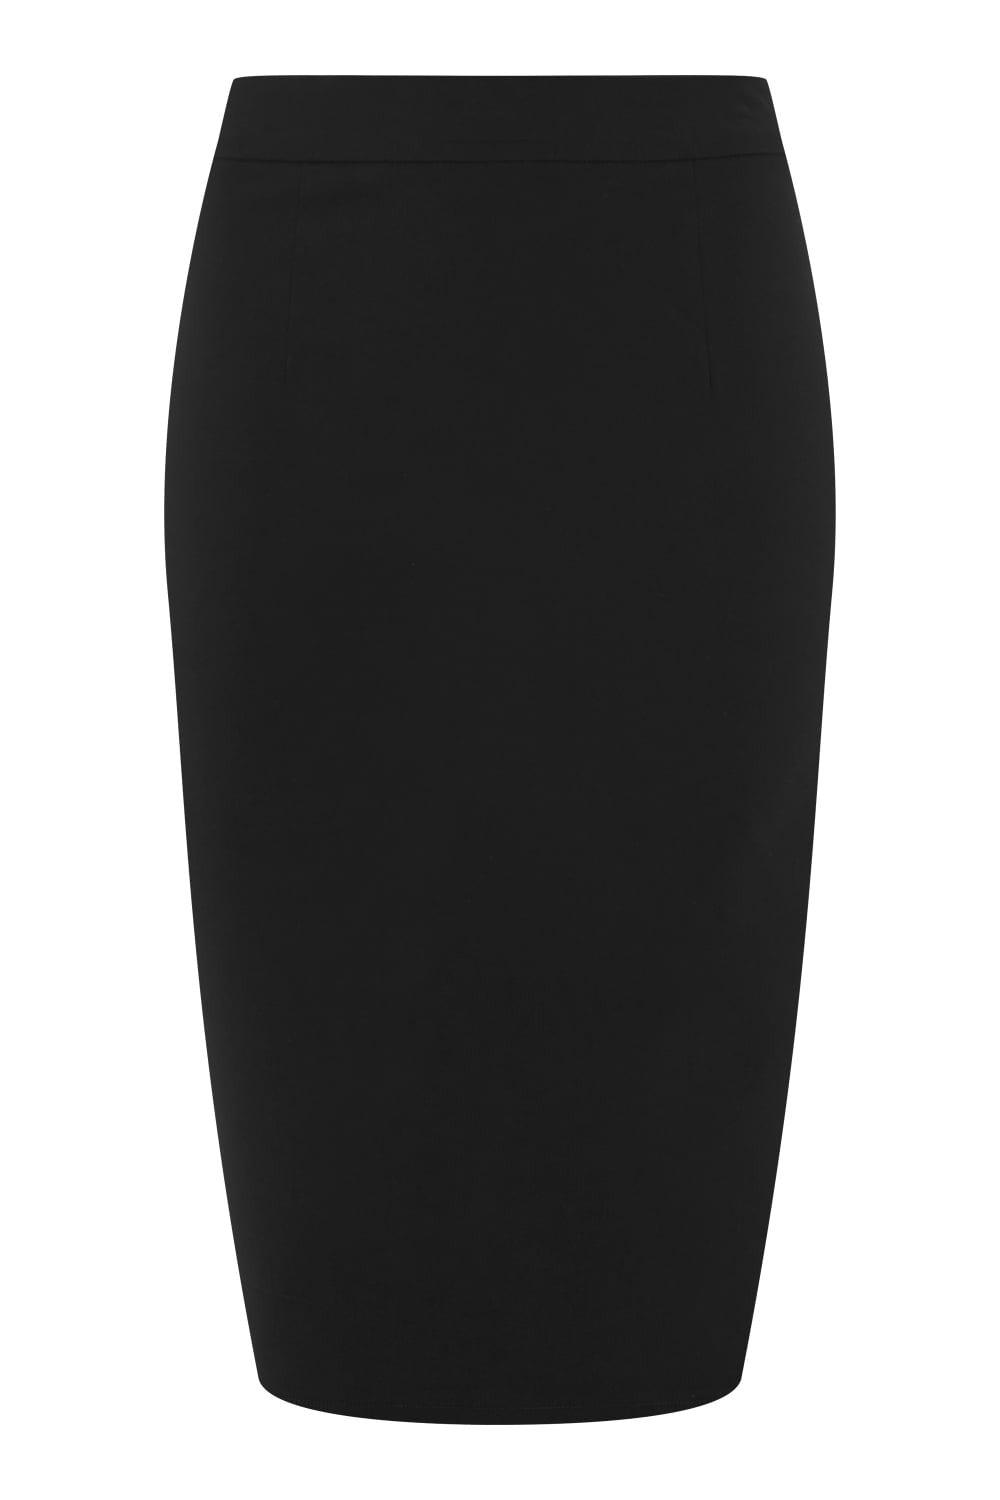 The Joanie Pencil Skirt in black  SOLD OUT!